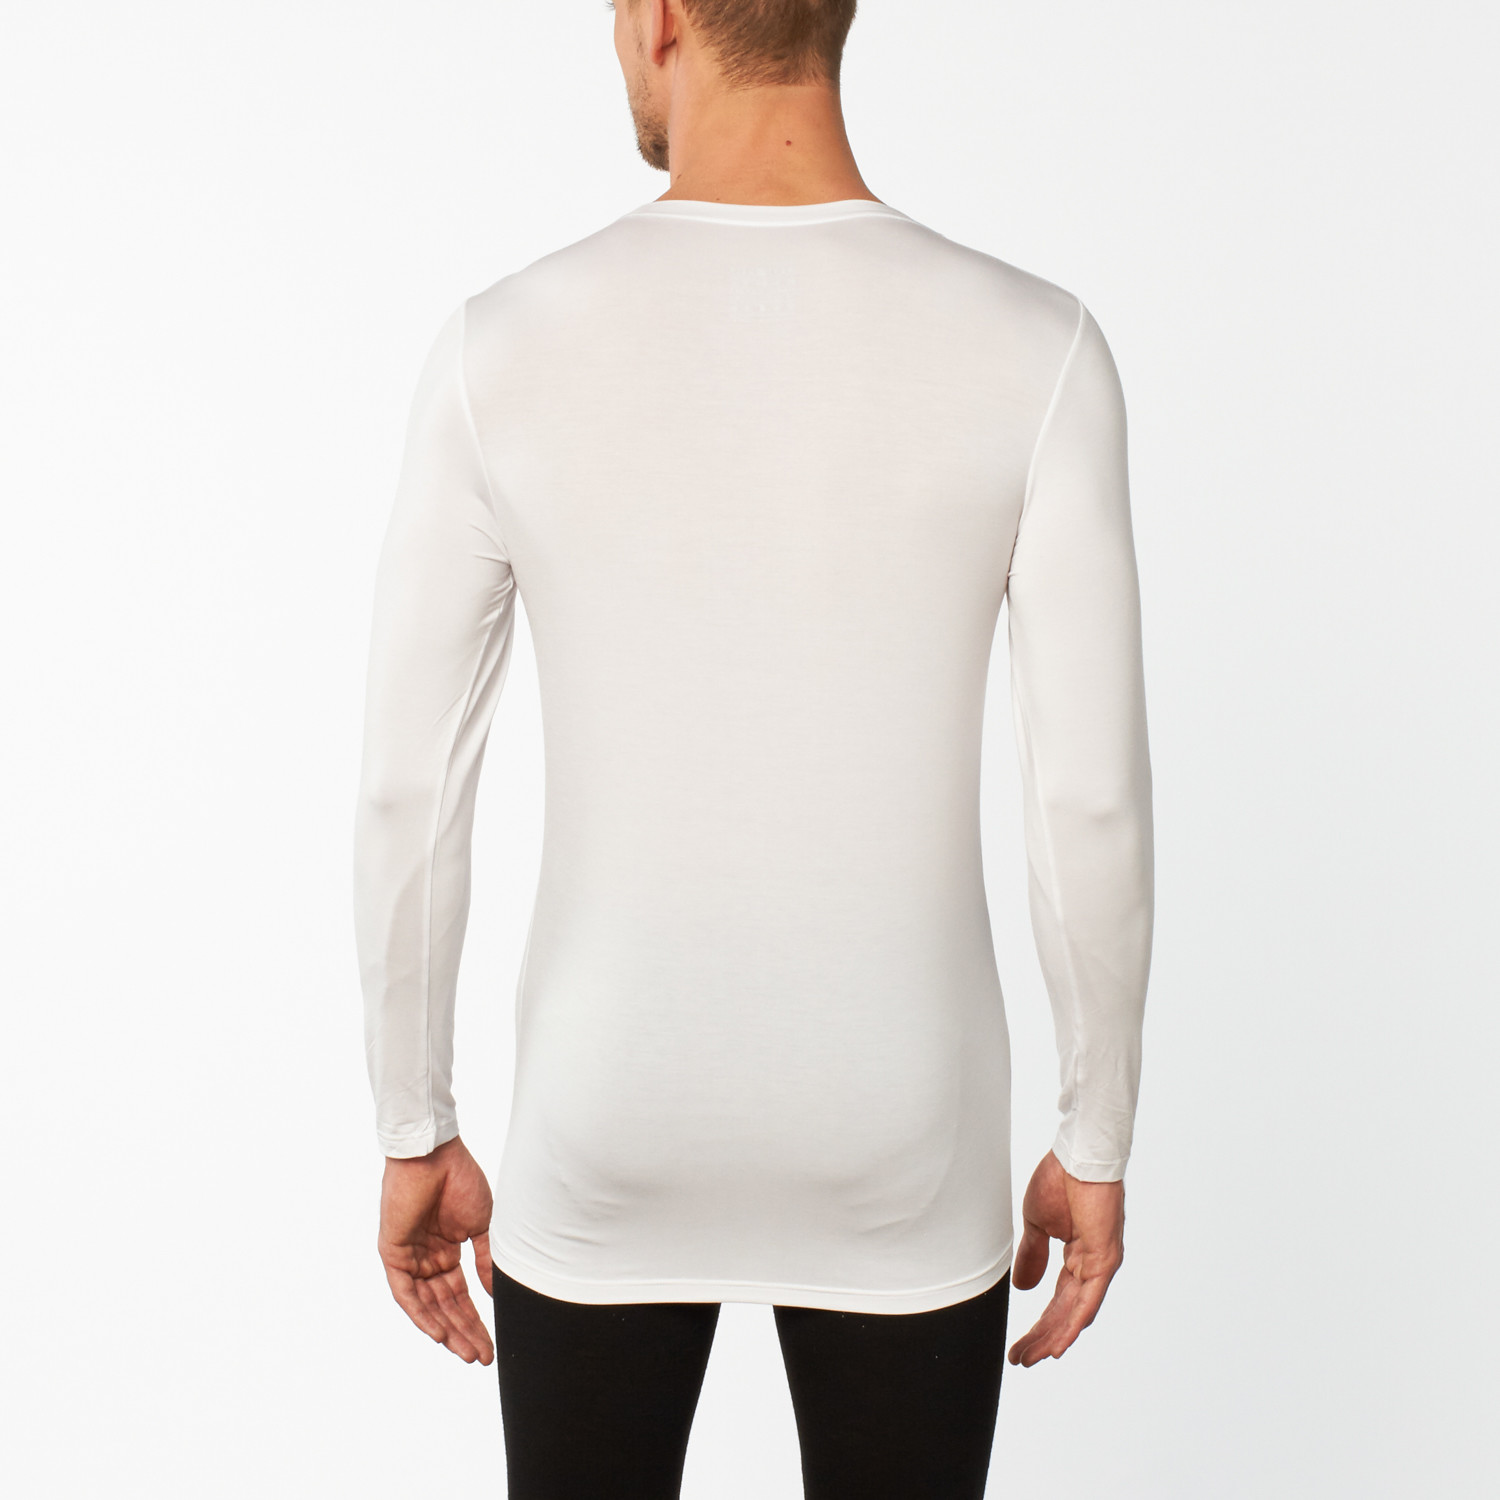 Hanes Men's Long Sleeve T-Shirts Our soft cotton and cotton blend men's long sleeve t-shirts are synonymous with comfort, style, and fit. Loaded with features including double stitching at the hem and sleeves, moisture-wicking fabrics, and our famous comfort tag-free label, our long sleeve t shirts are perfect for casual Fridays and weekend wear.